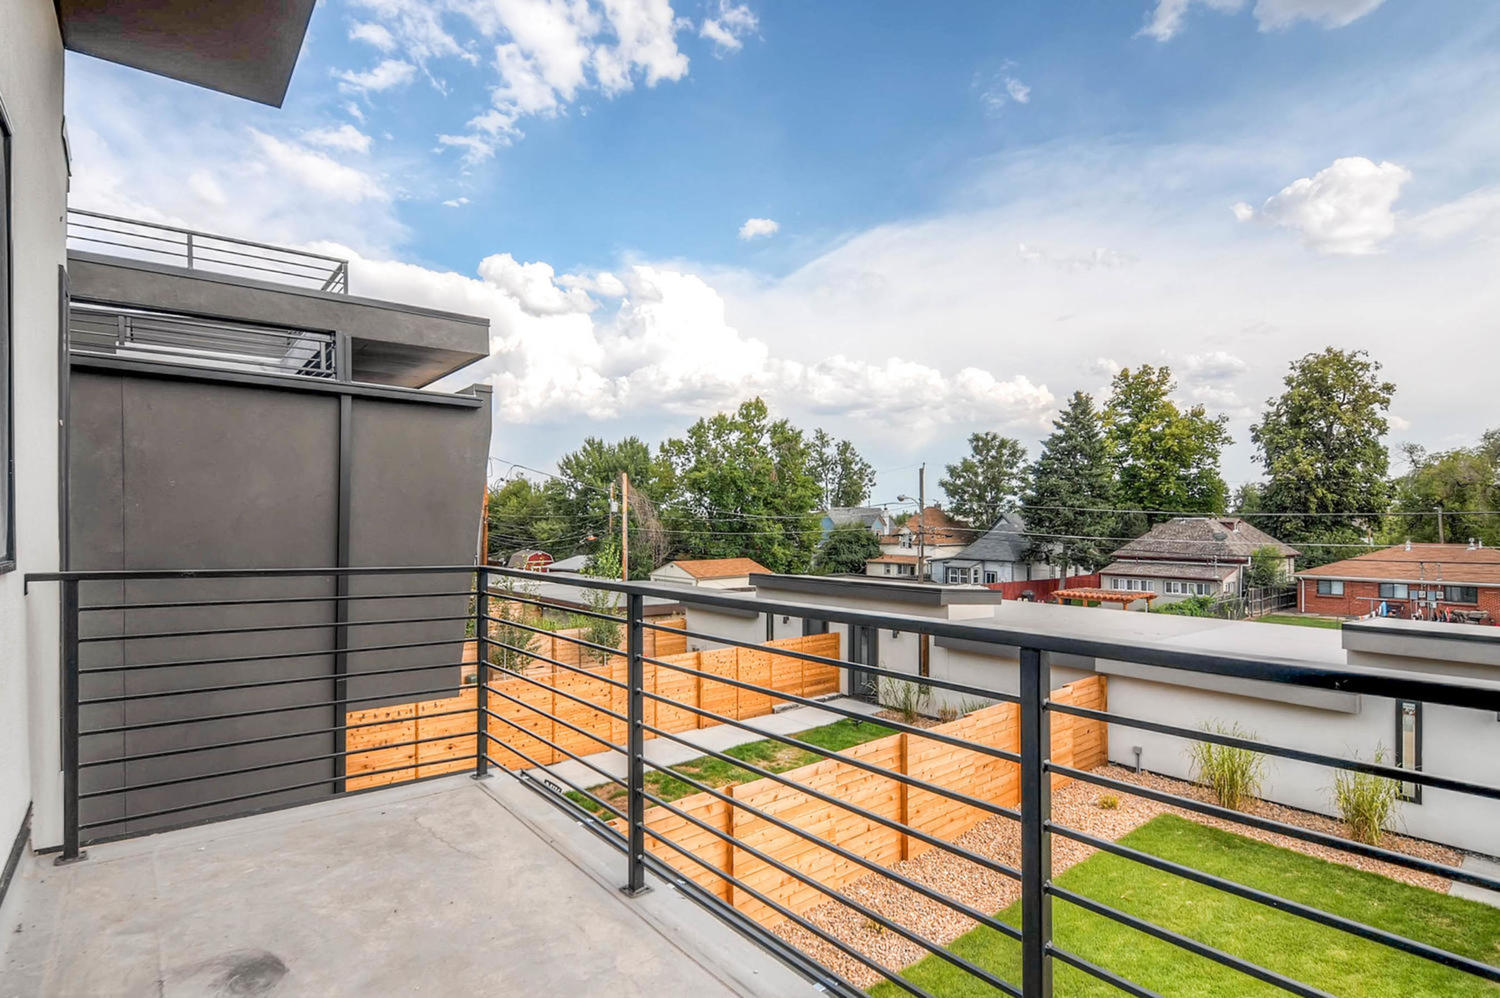 3120 w 27th ave denver co large 016 15 master bedroom balcony 1500x998 72dpi